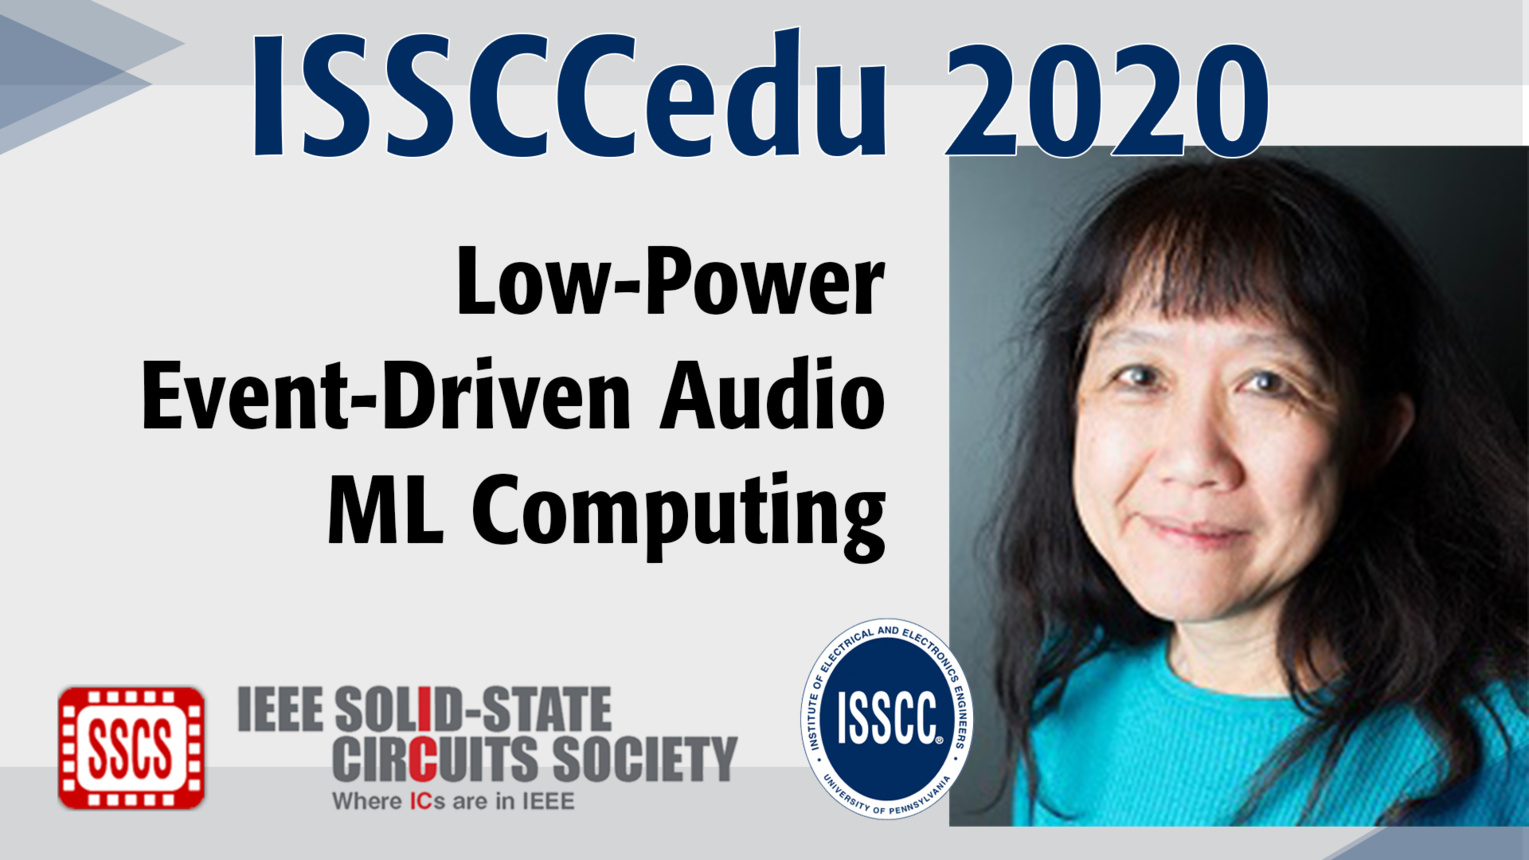 Low-Power Event-Driven Audio ML Computing Technology - Shih-Chii Liu - ISSCCedu 2020